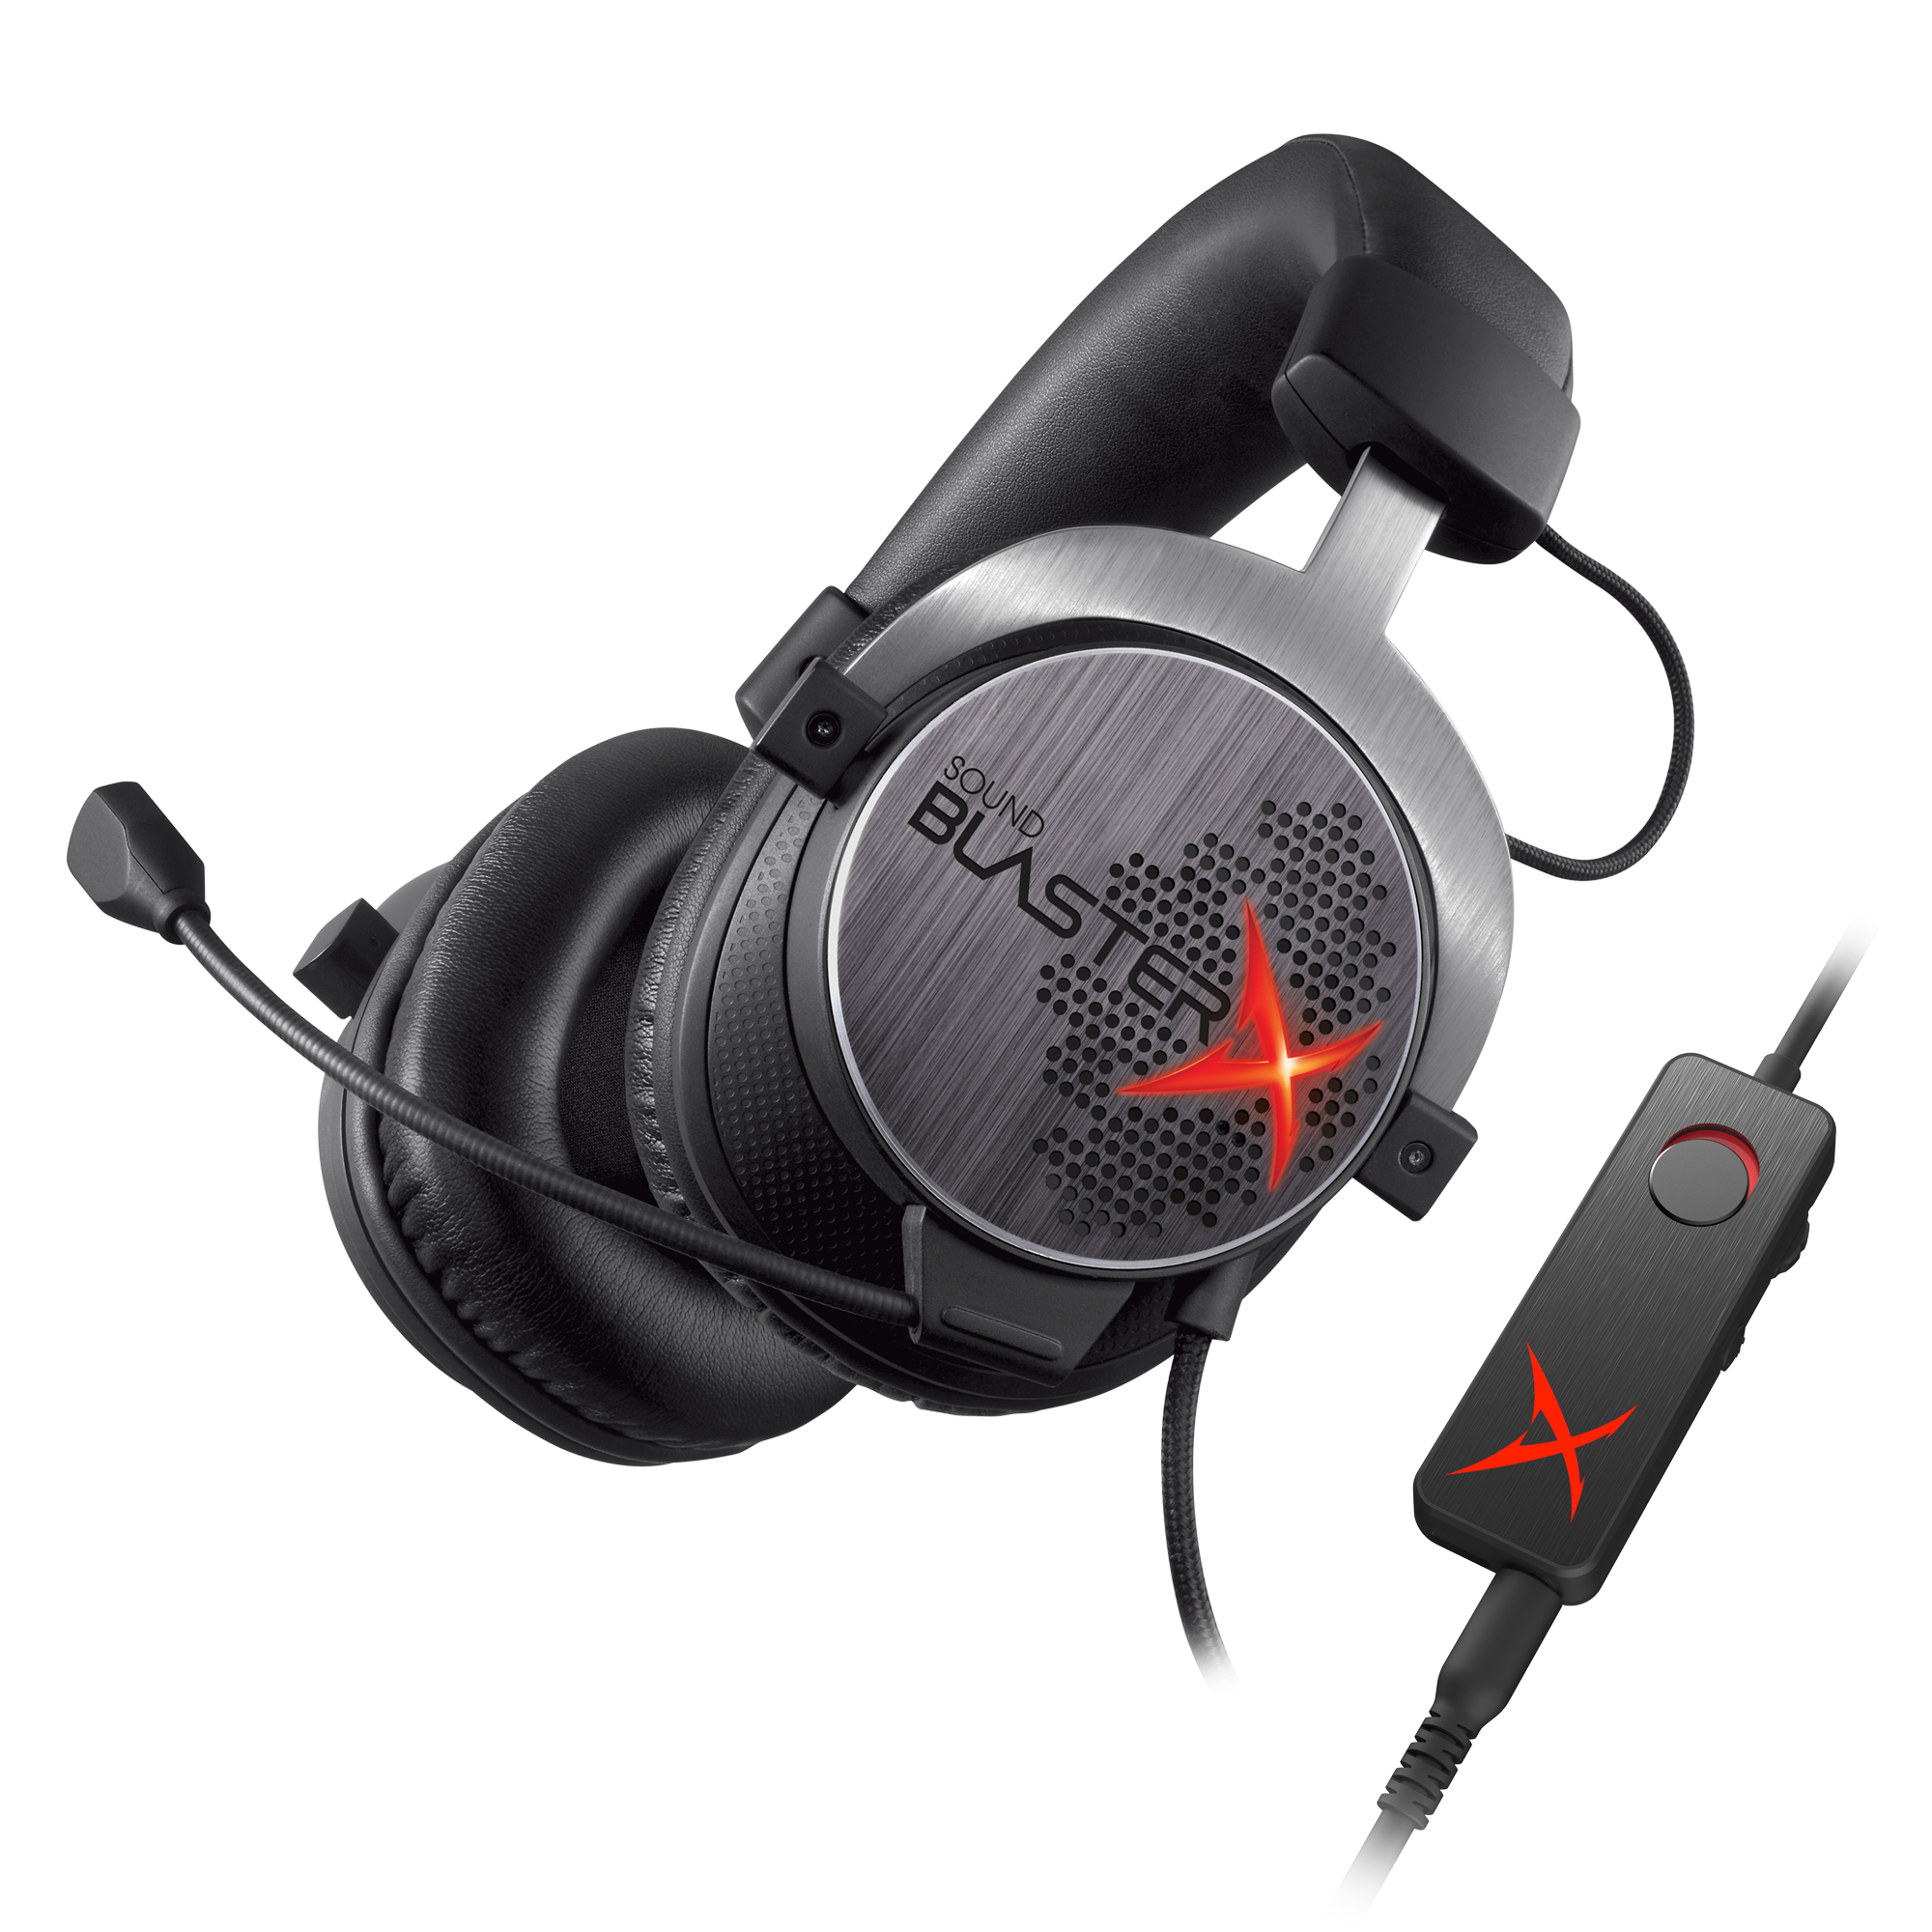 BLASTERX ACOUSTIC ENGINE DRIVER FOR WINDOWS 8